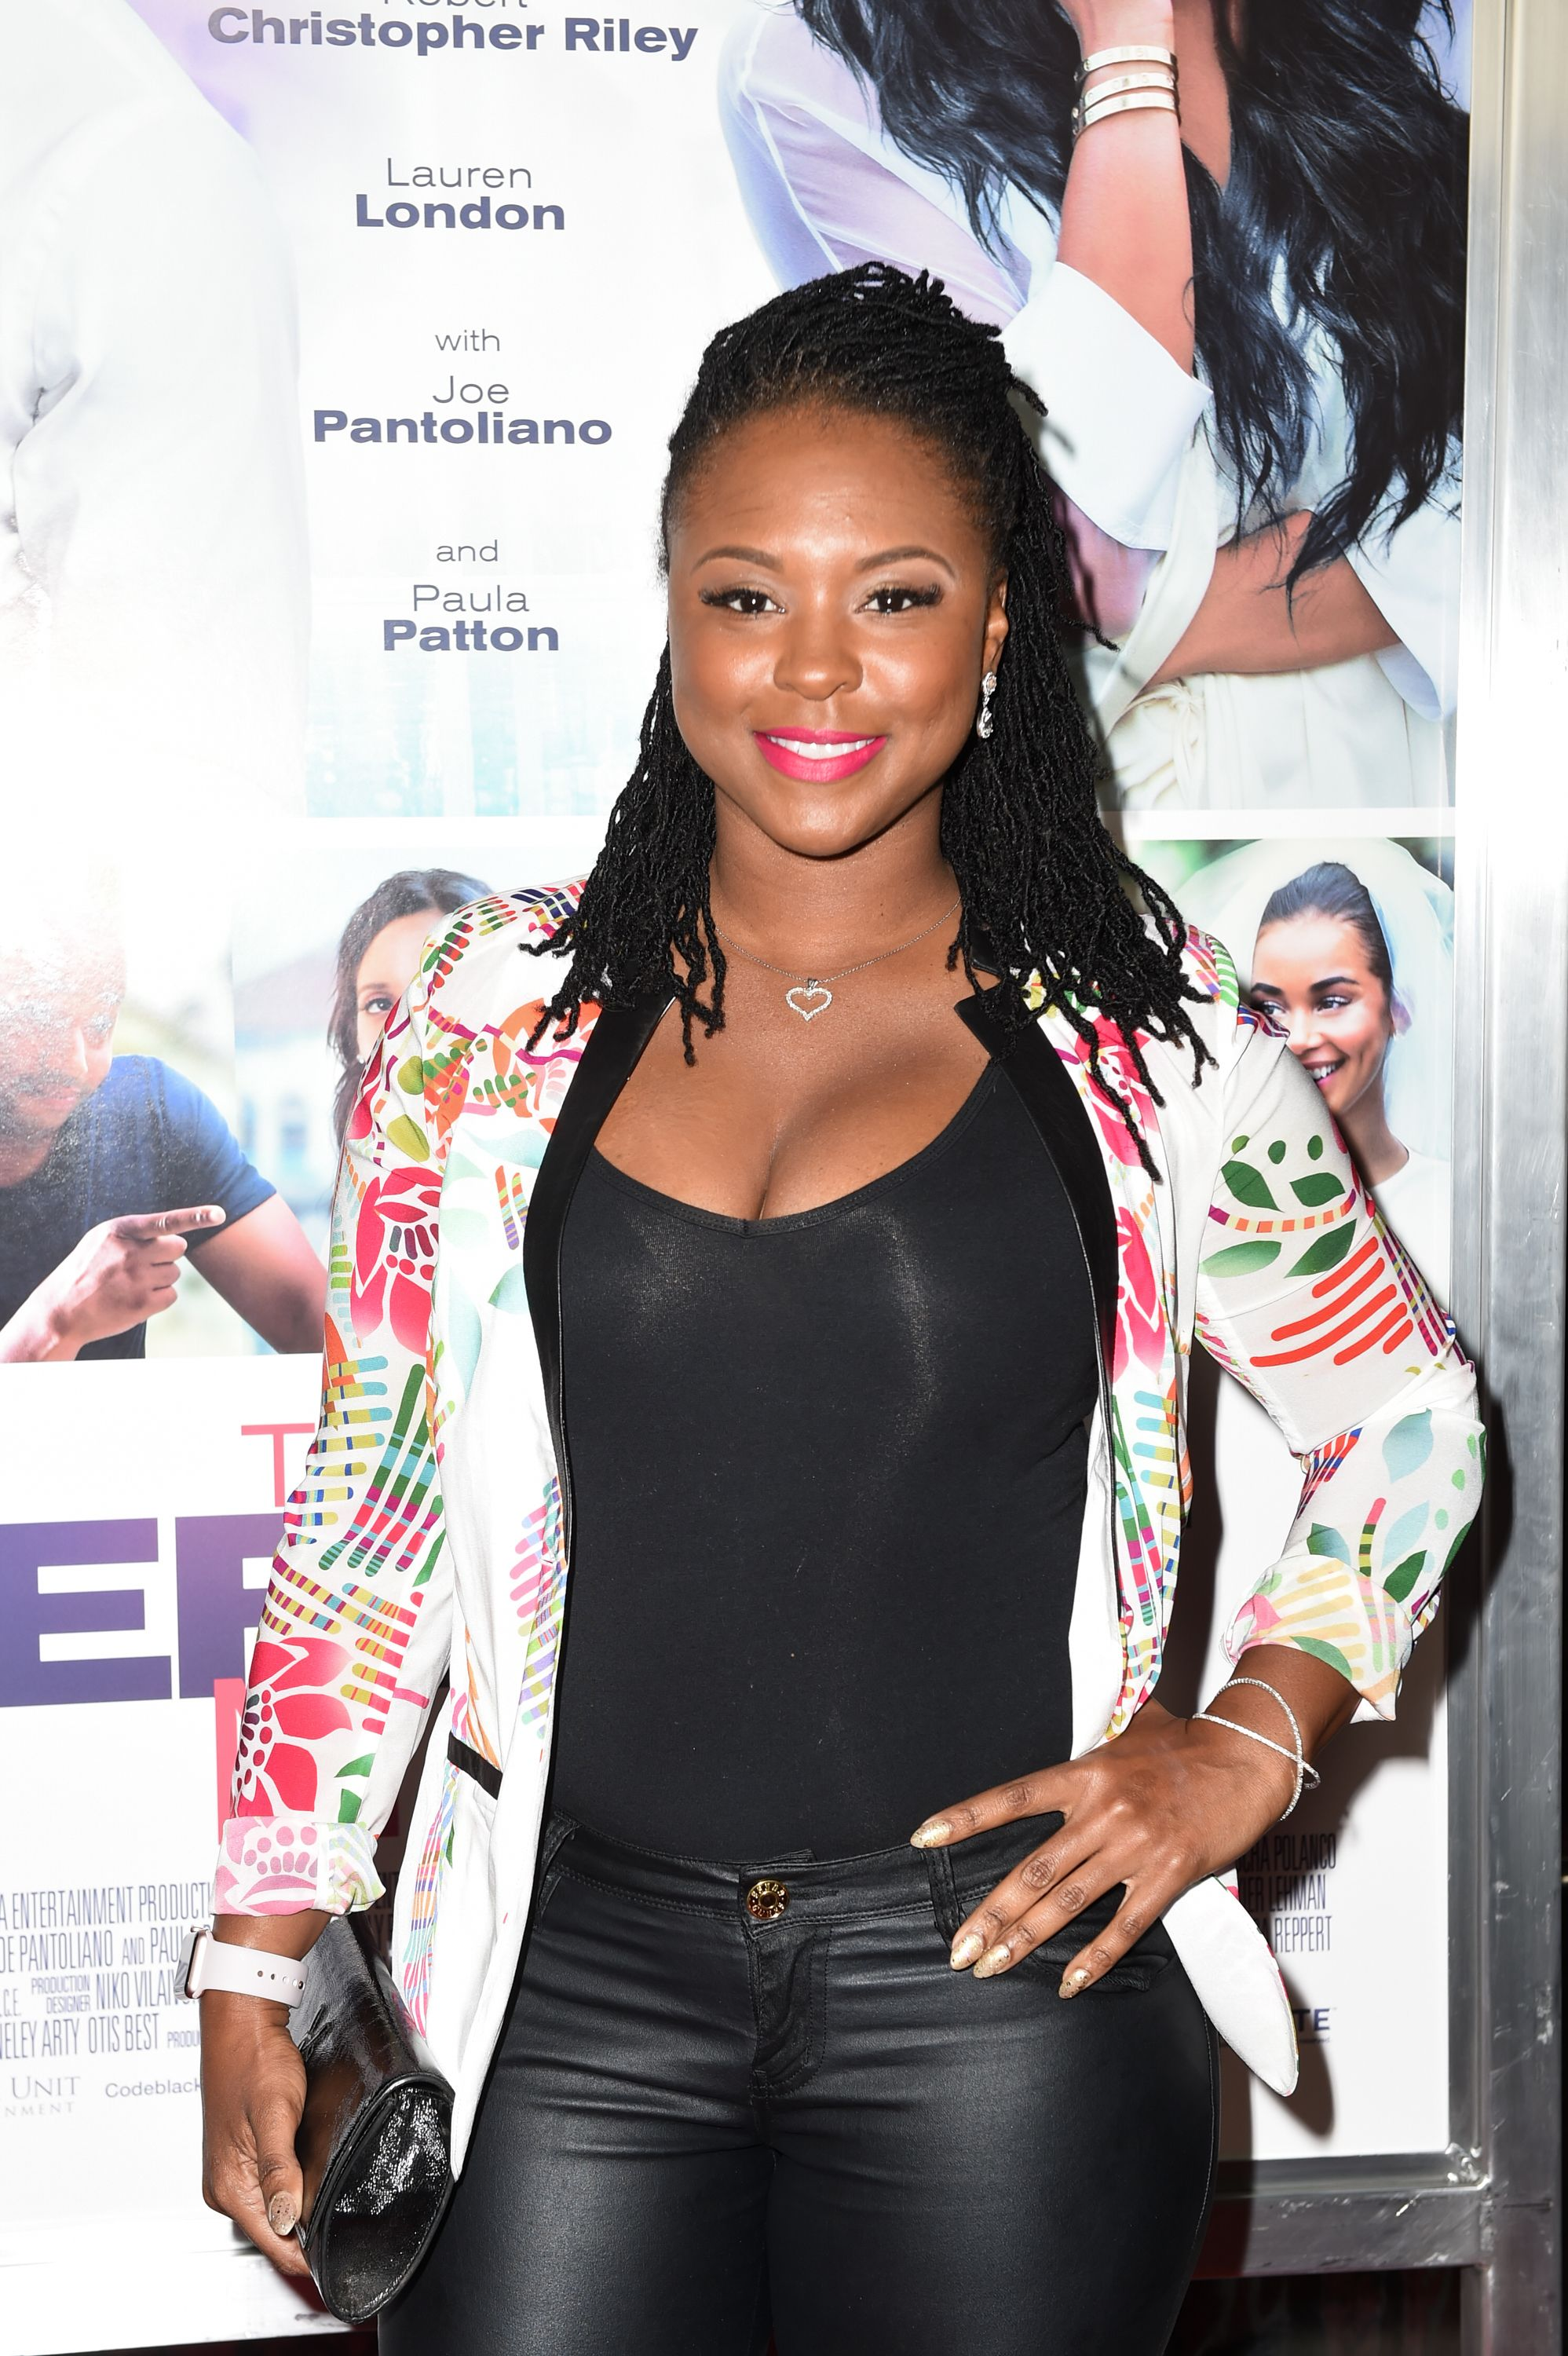 Actress Torrei Hart at the premiere of Lionsgate's 'The Perfect Match' at ArcLight Hollywood on March 7, 2016 in Hollywood, California | Photo: Getty Images